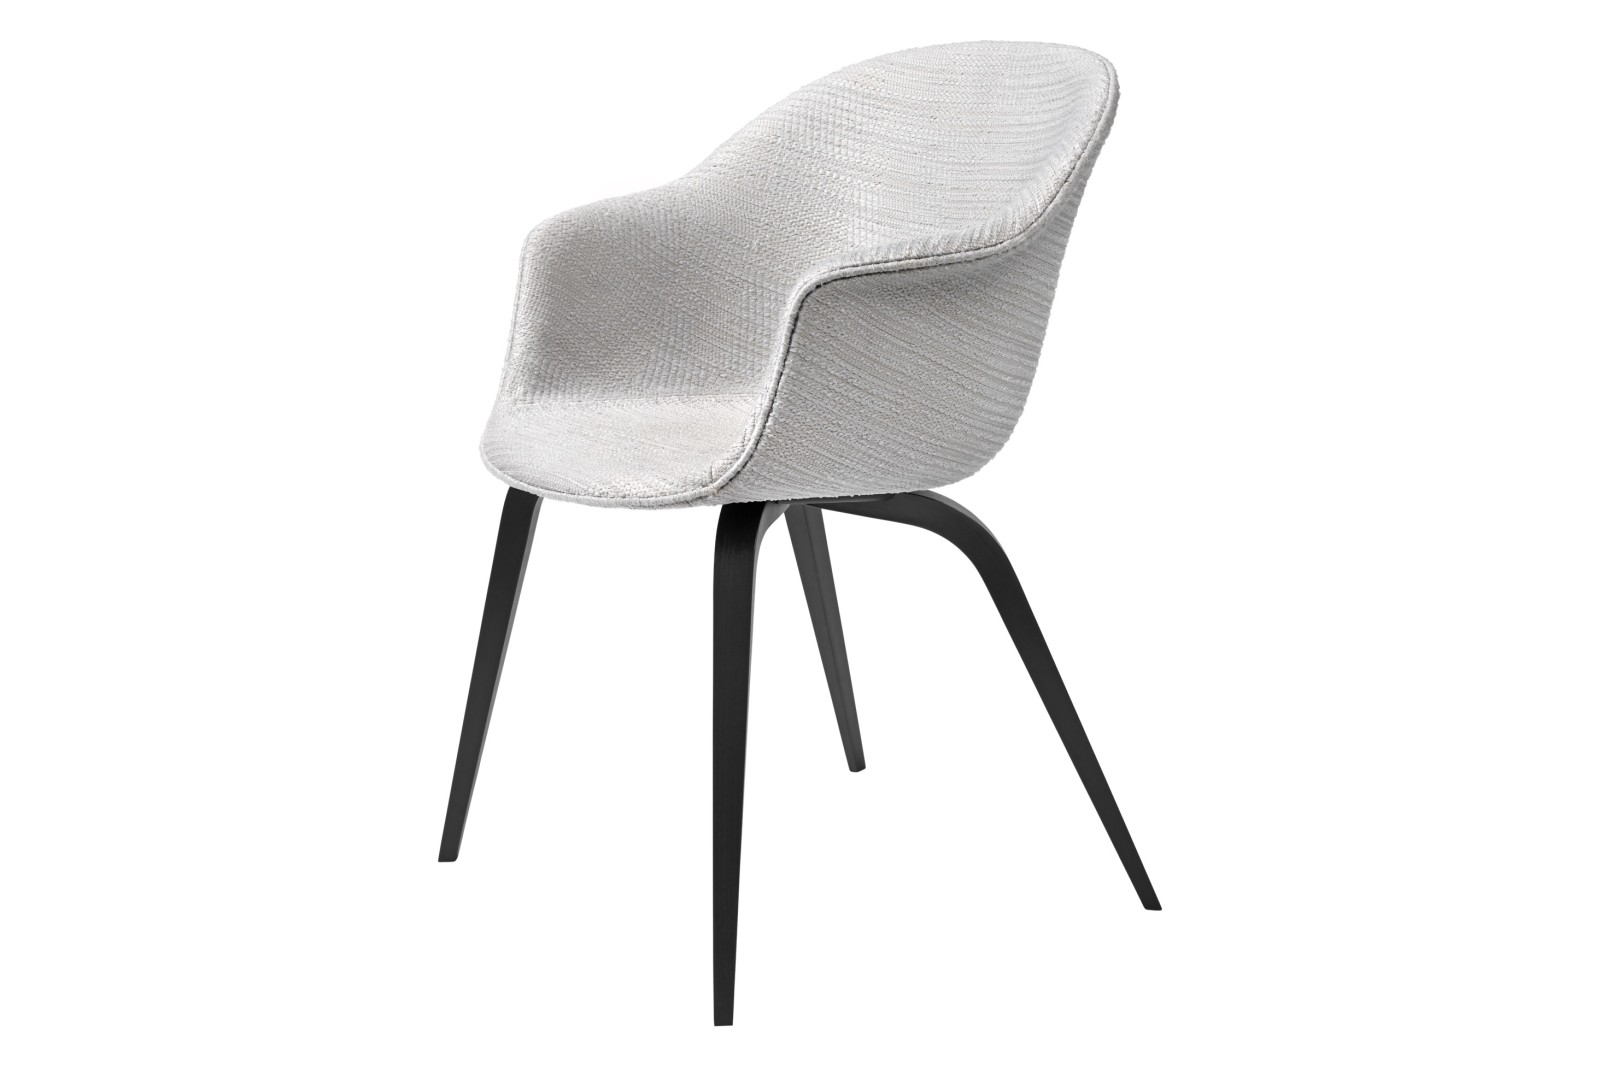 Bat Dining Chair - Fully Upholstered, Wood base Gubi Wood American Walnut, Price Grp. 01